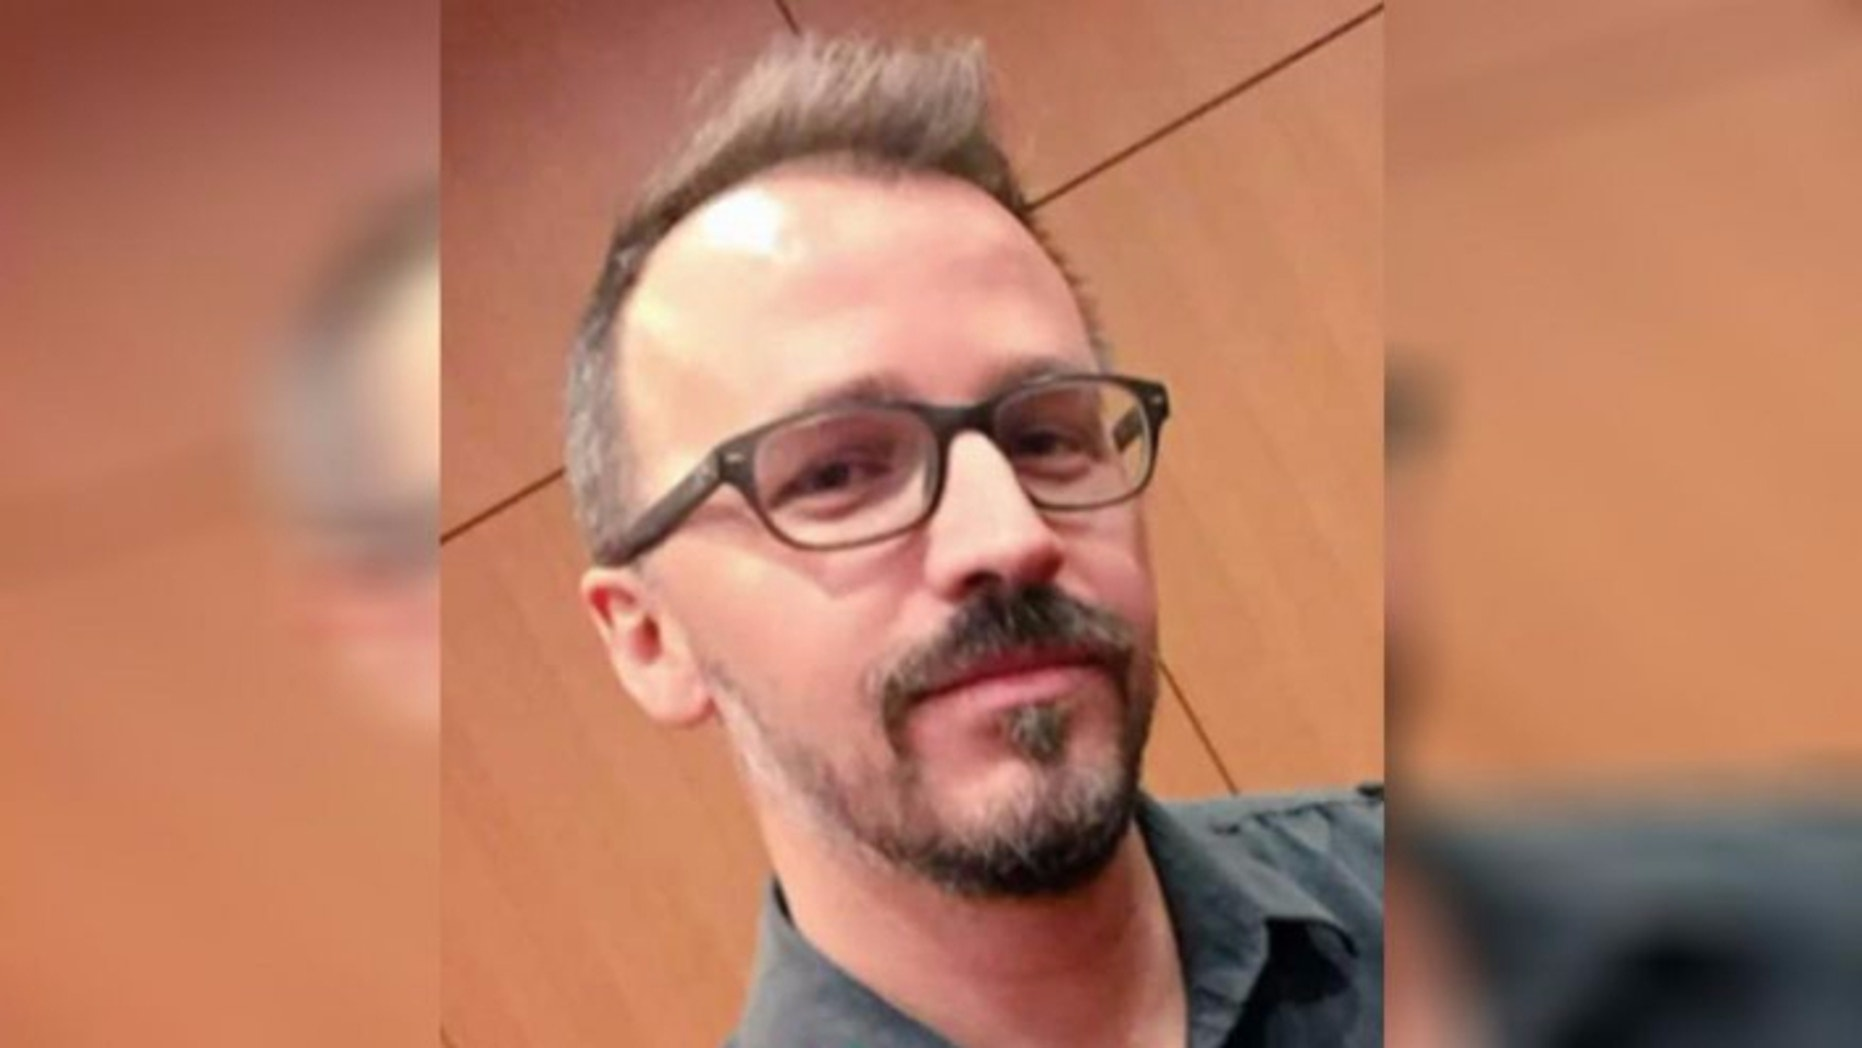 Drexel professor George Ciccariello-Maher, who has a history of controversial tweets about whiteness.